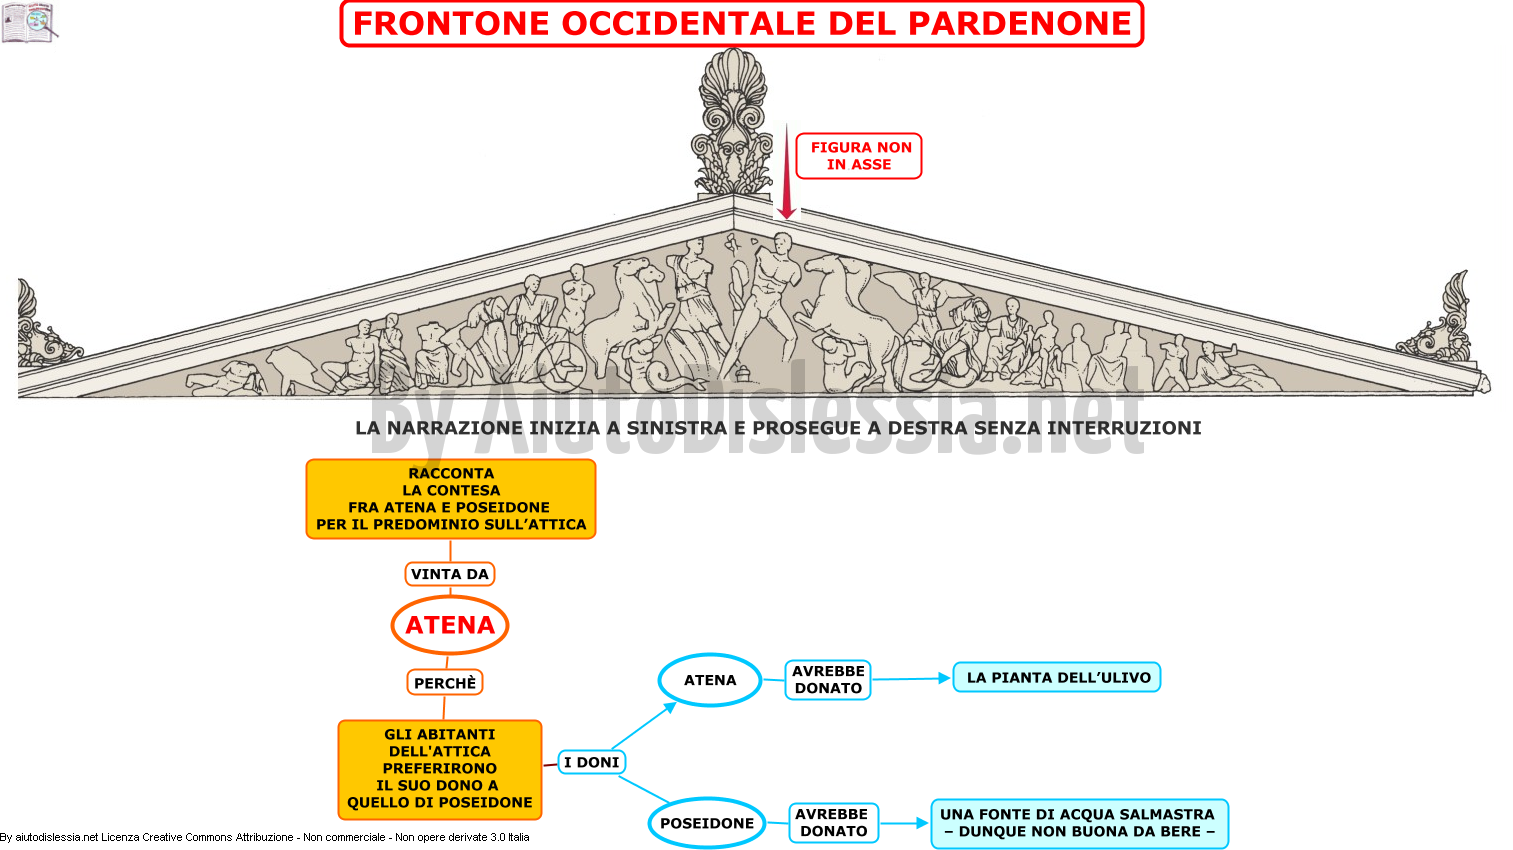 25-il-pardenone-frontone-occidentale